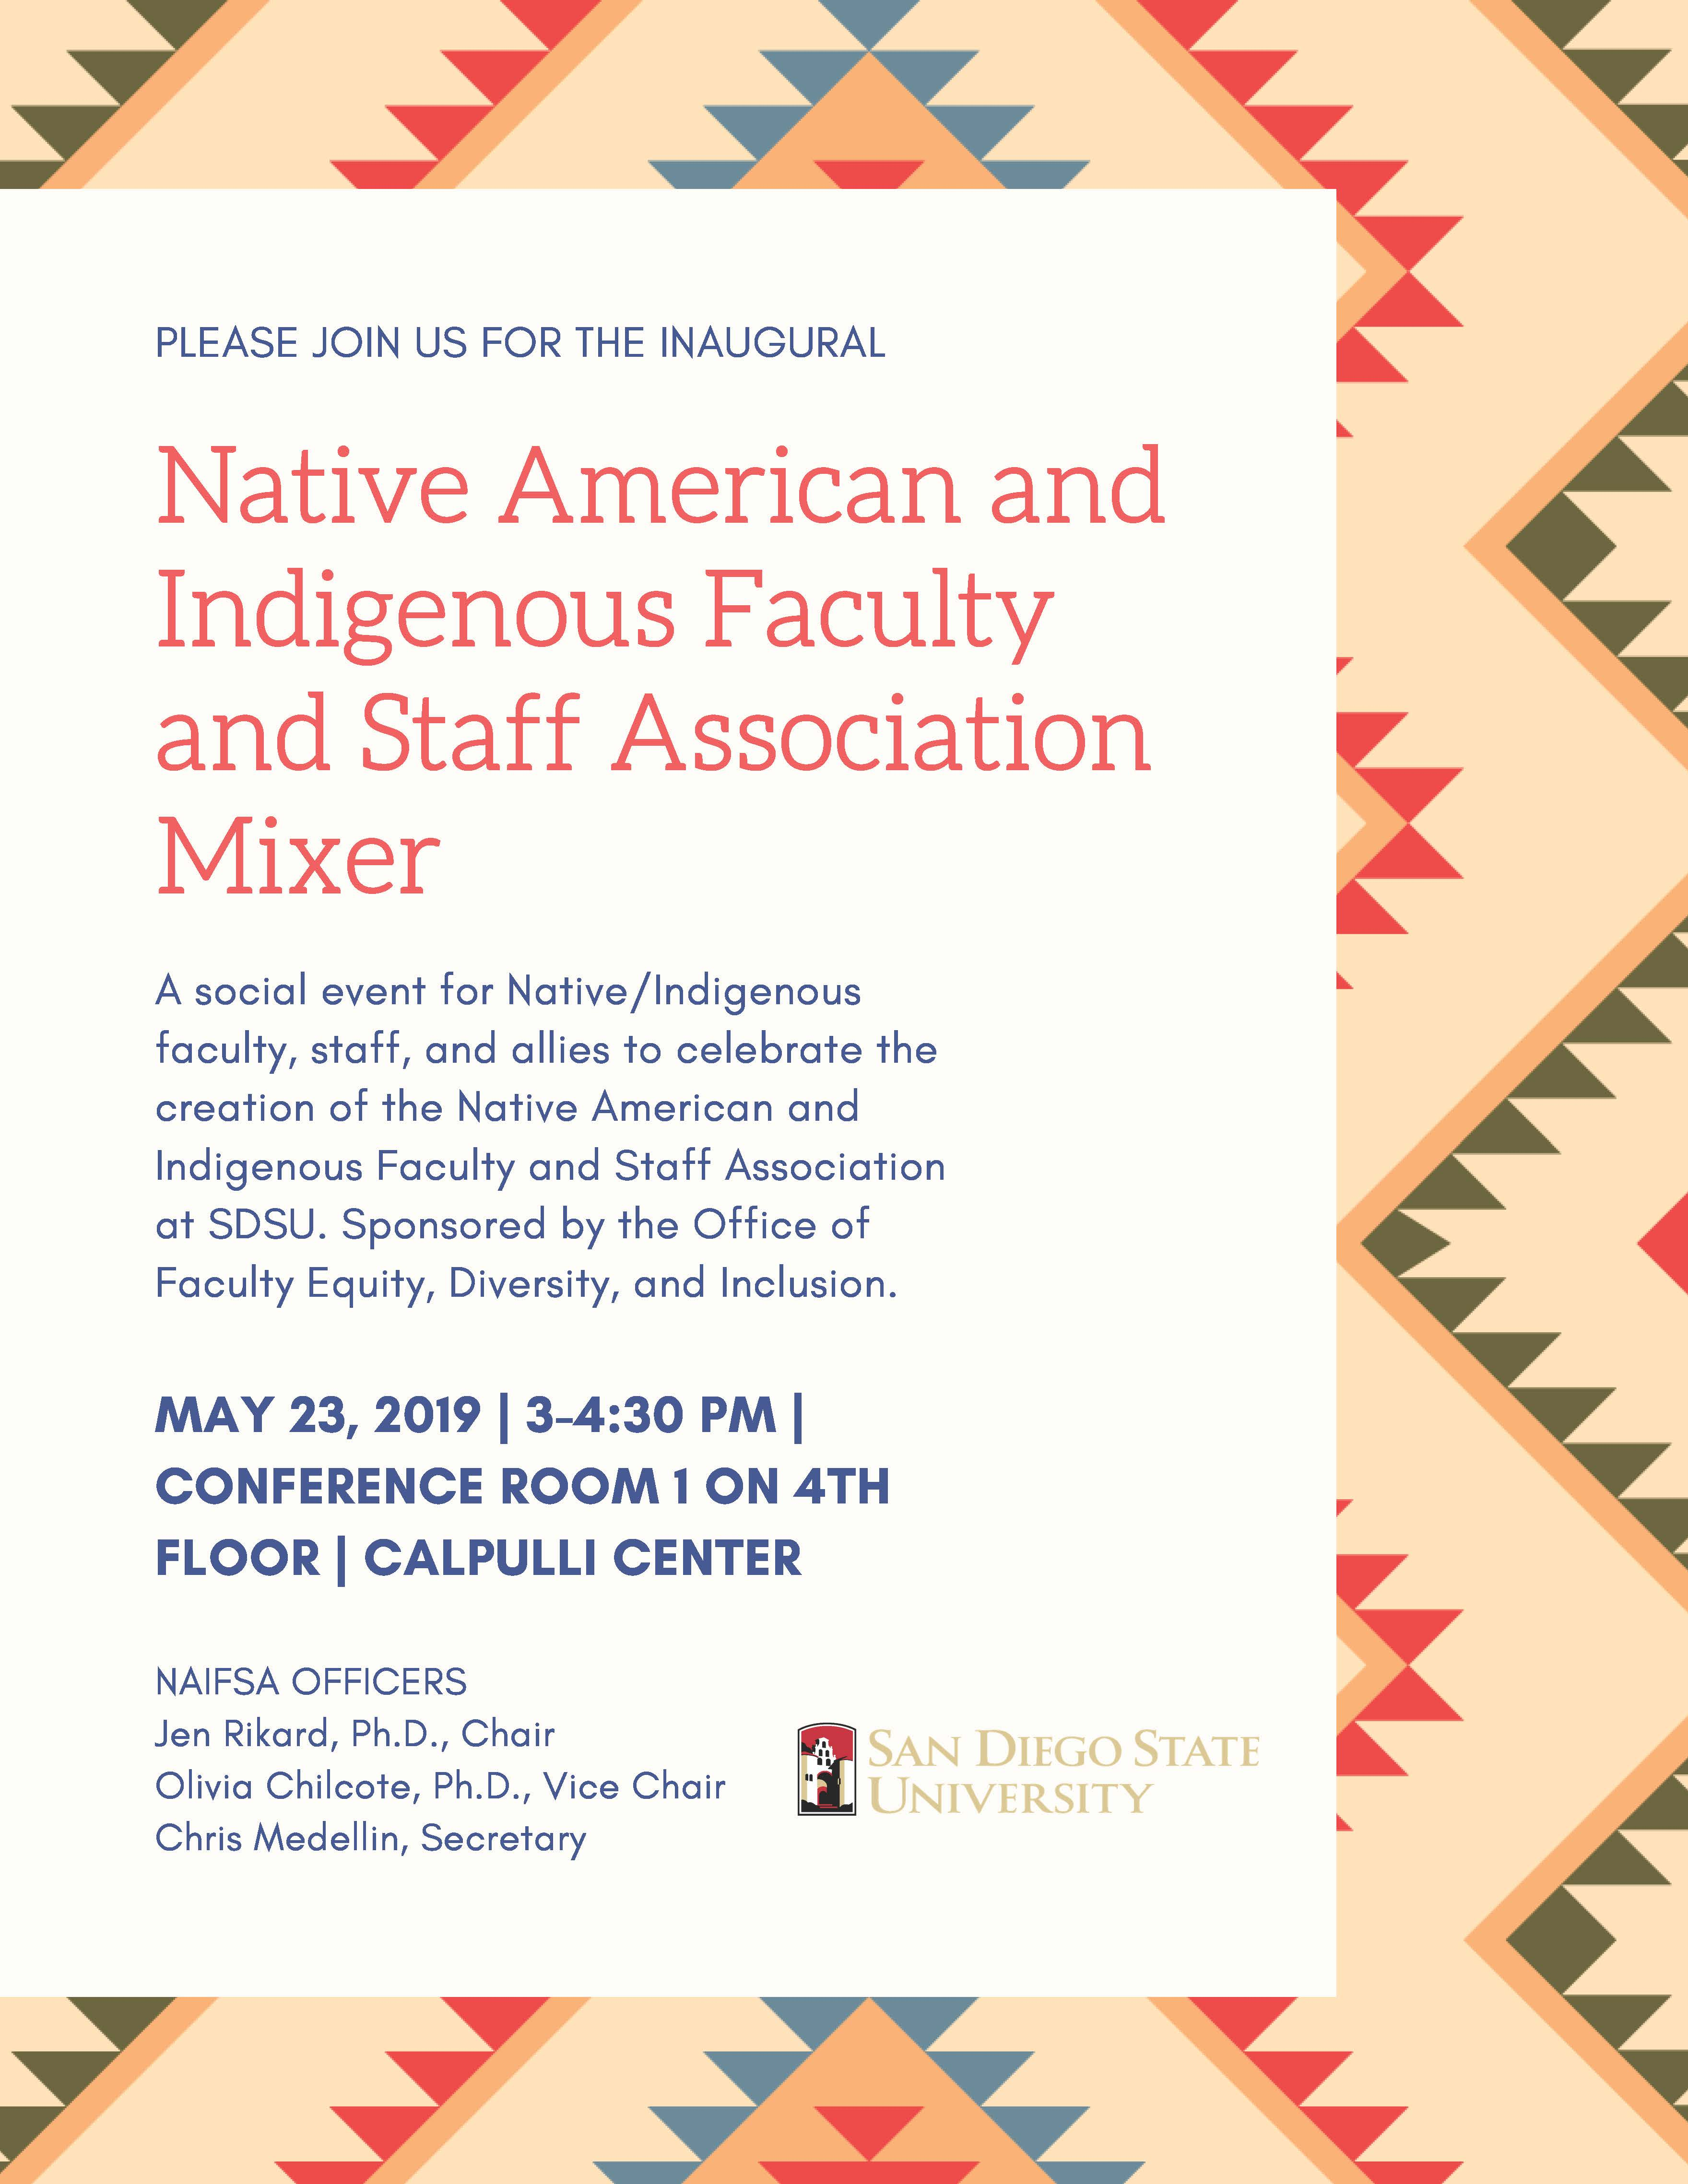 Native American and Indigenous Faculty and Staff Association Mixer